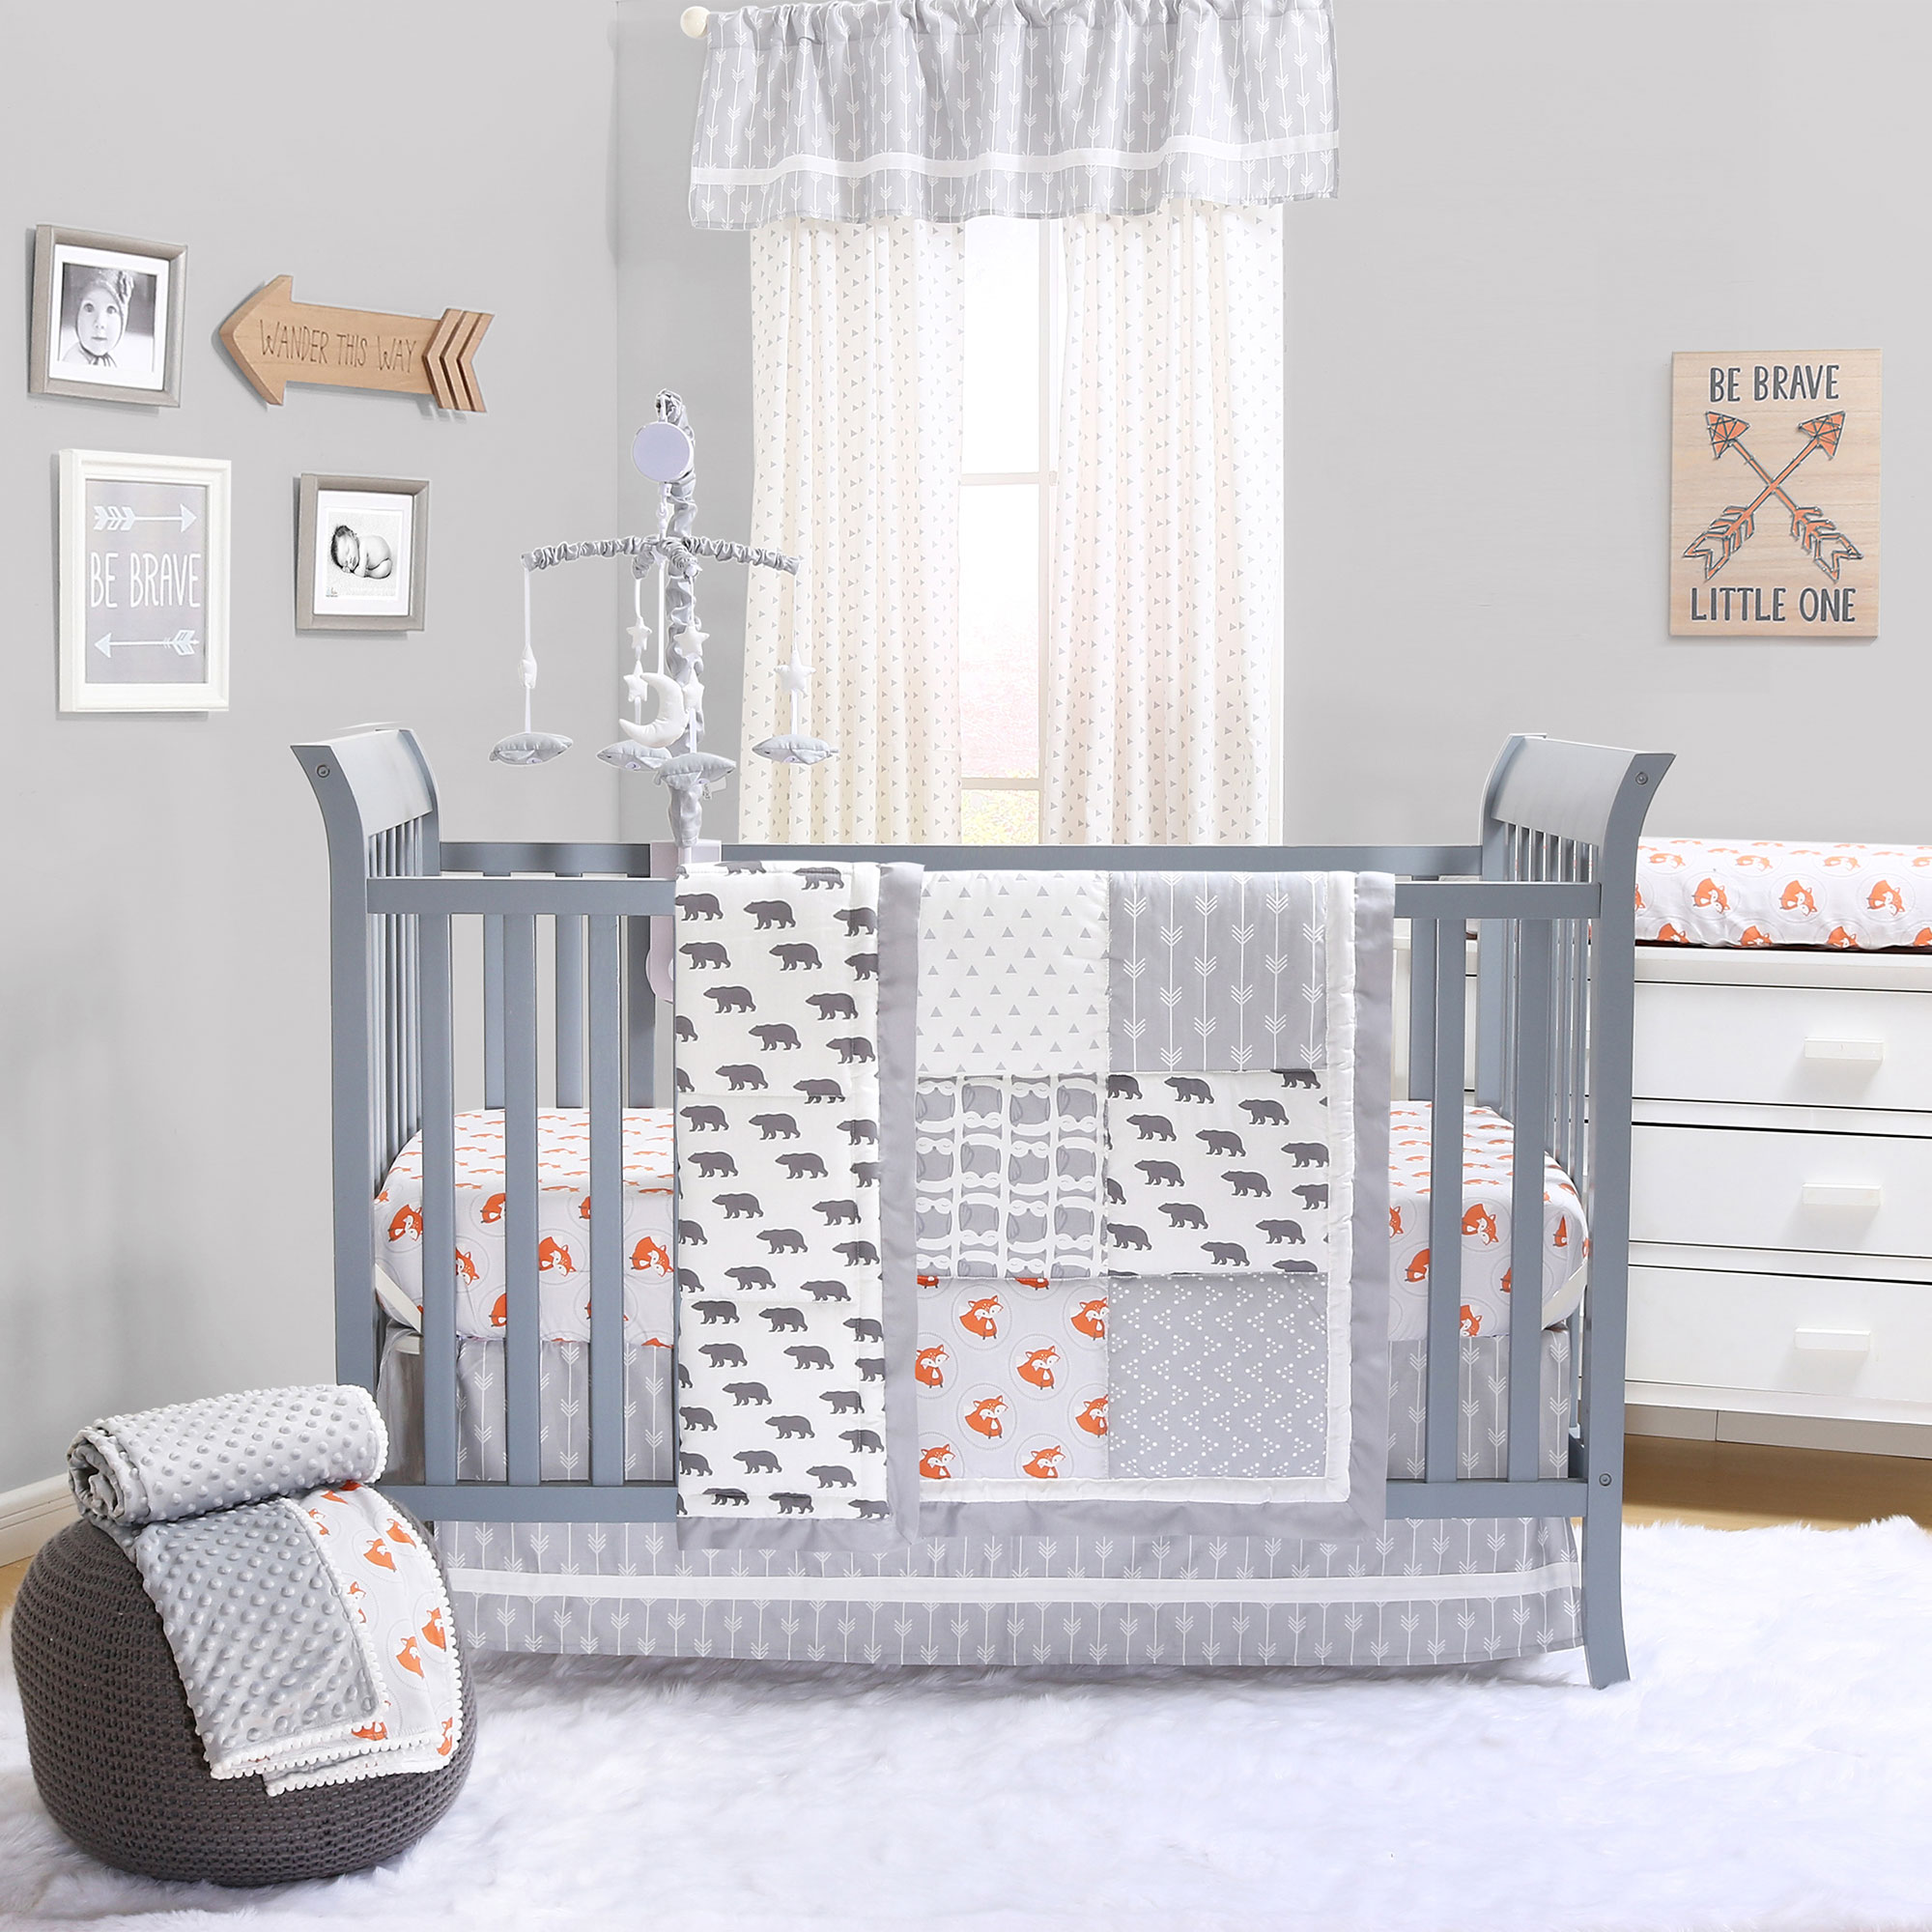 Grey and Orange Woodland Friends 4 Piece Crib Bedding Set by The Peanut Shell